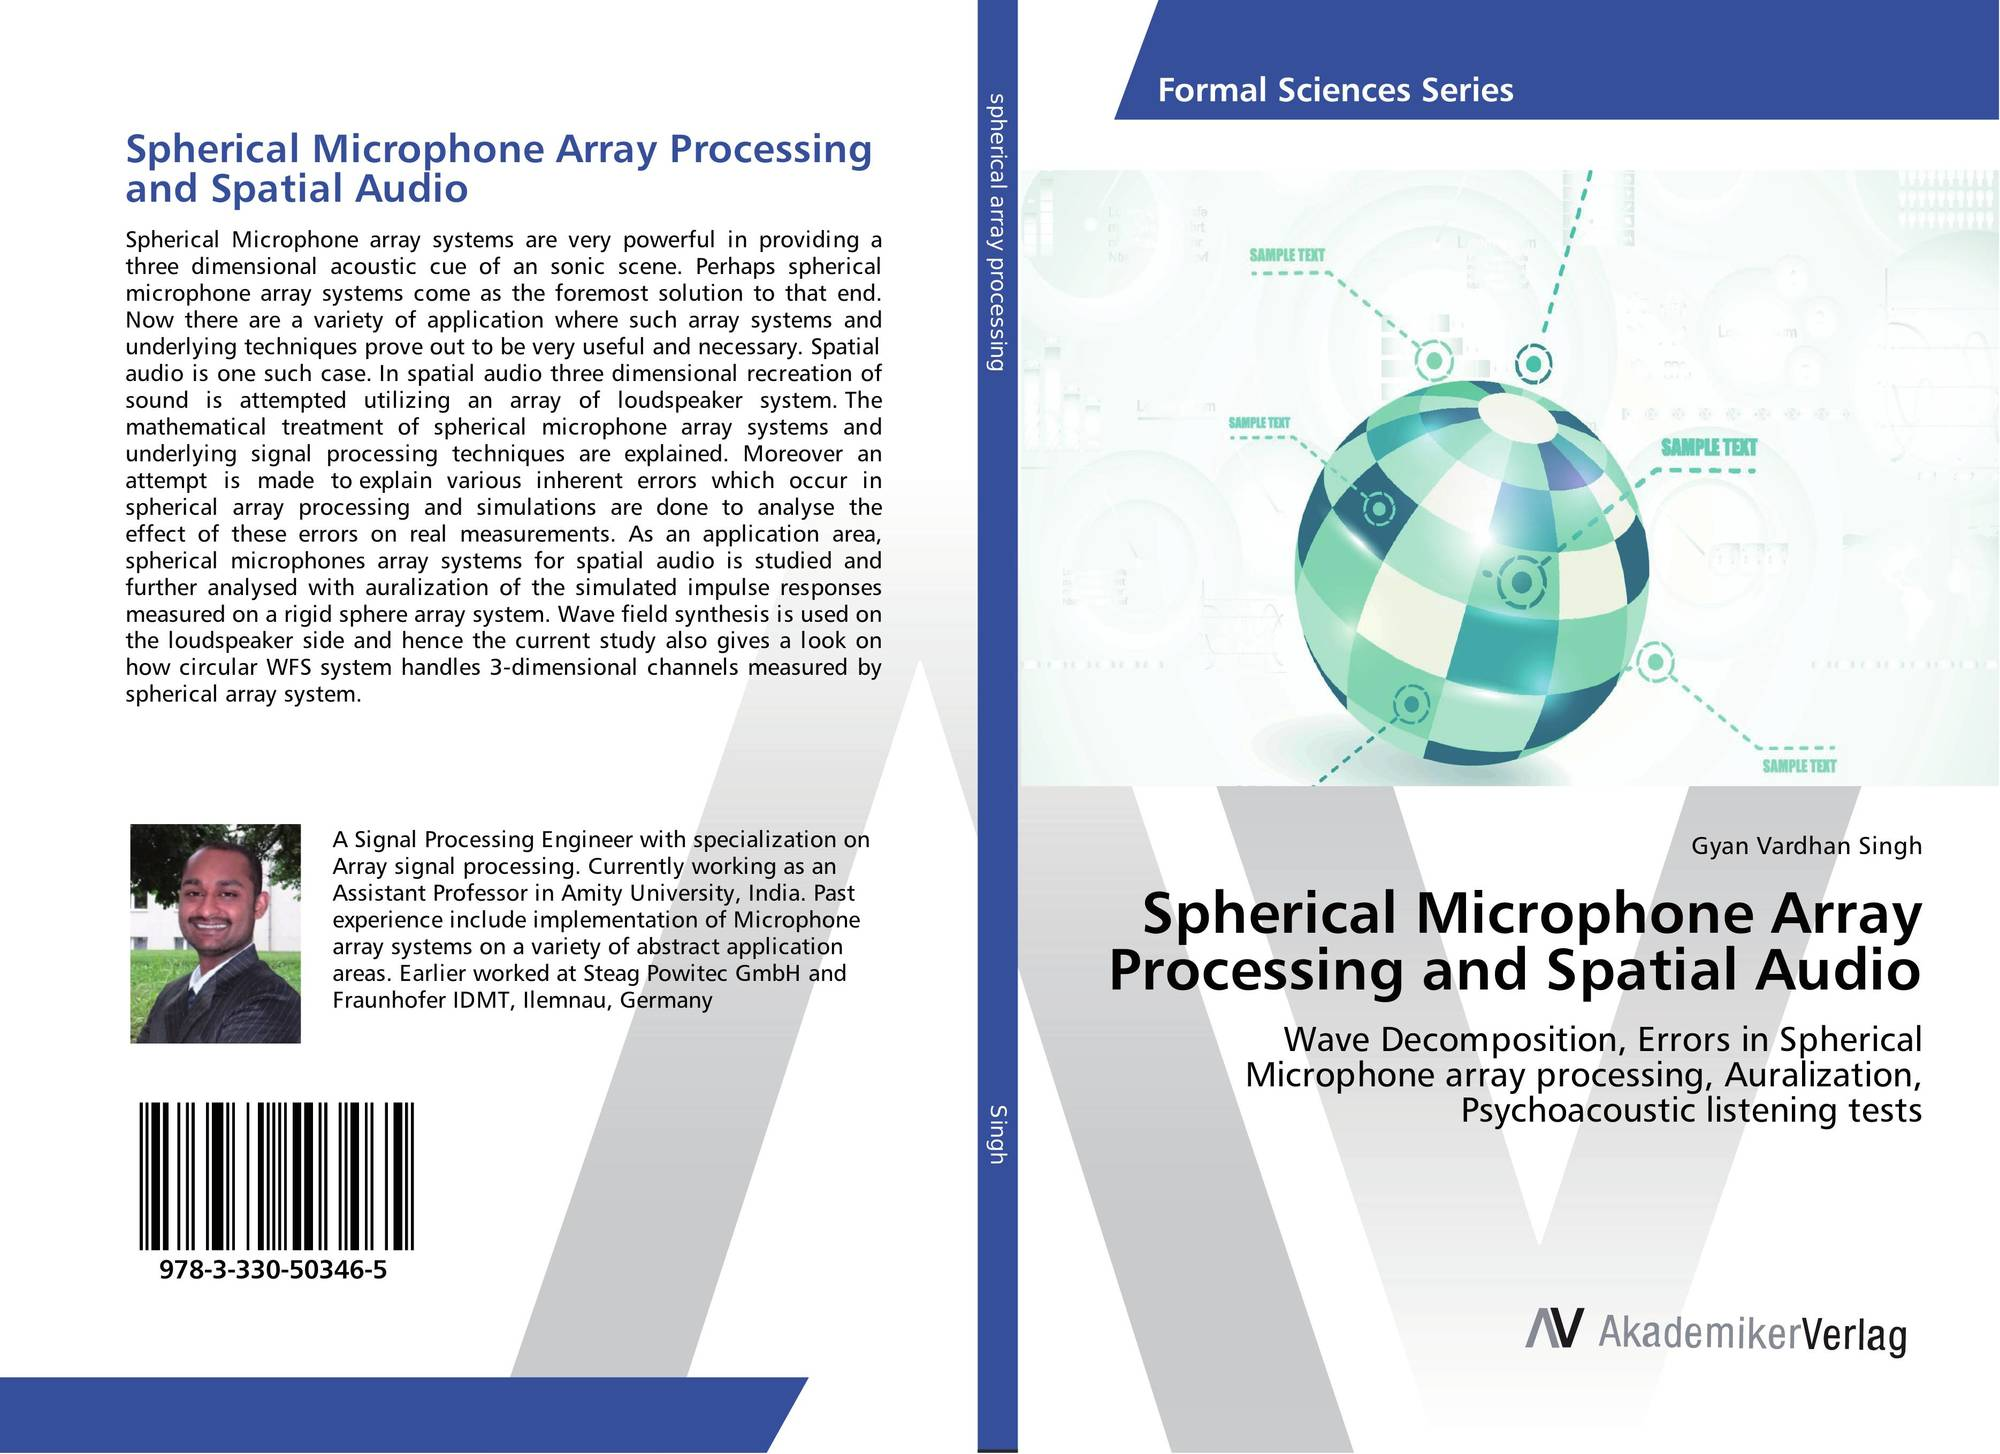 Spherical Microphone Array Processing and Spatial Audio, 978-3-330